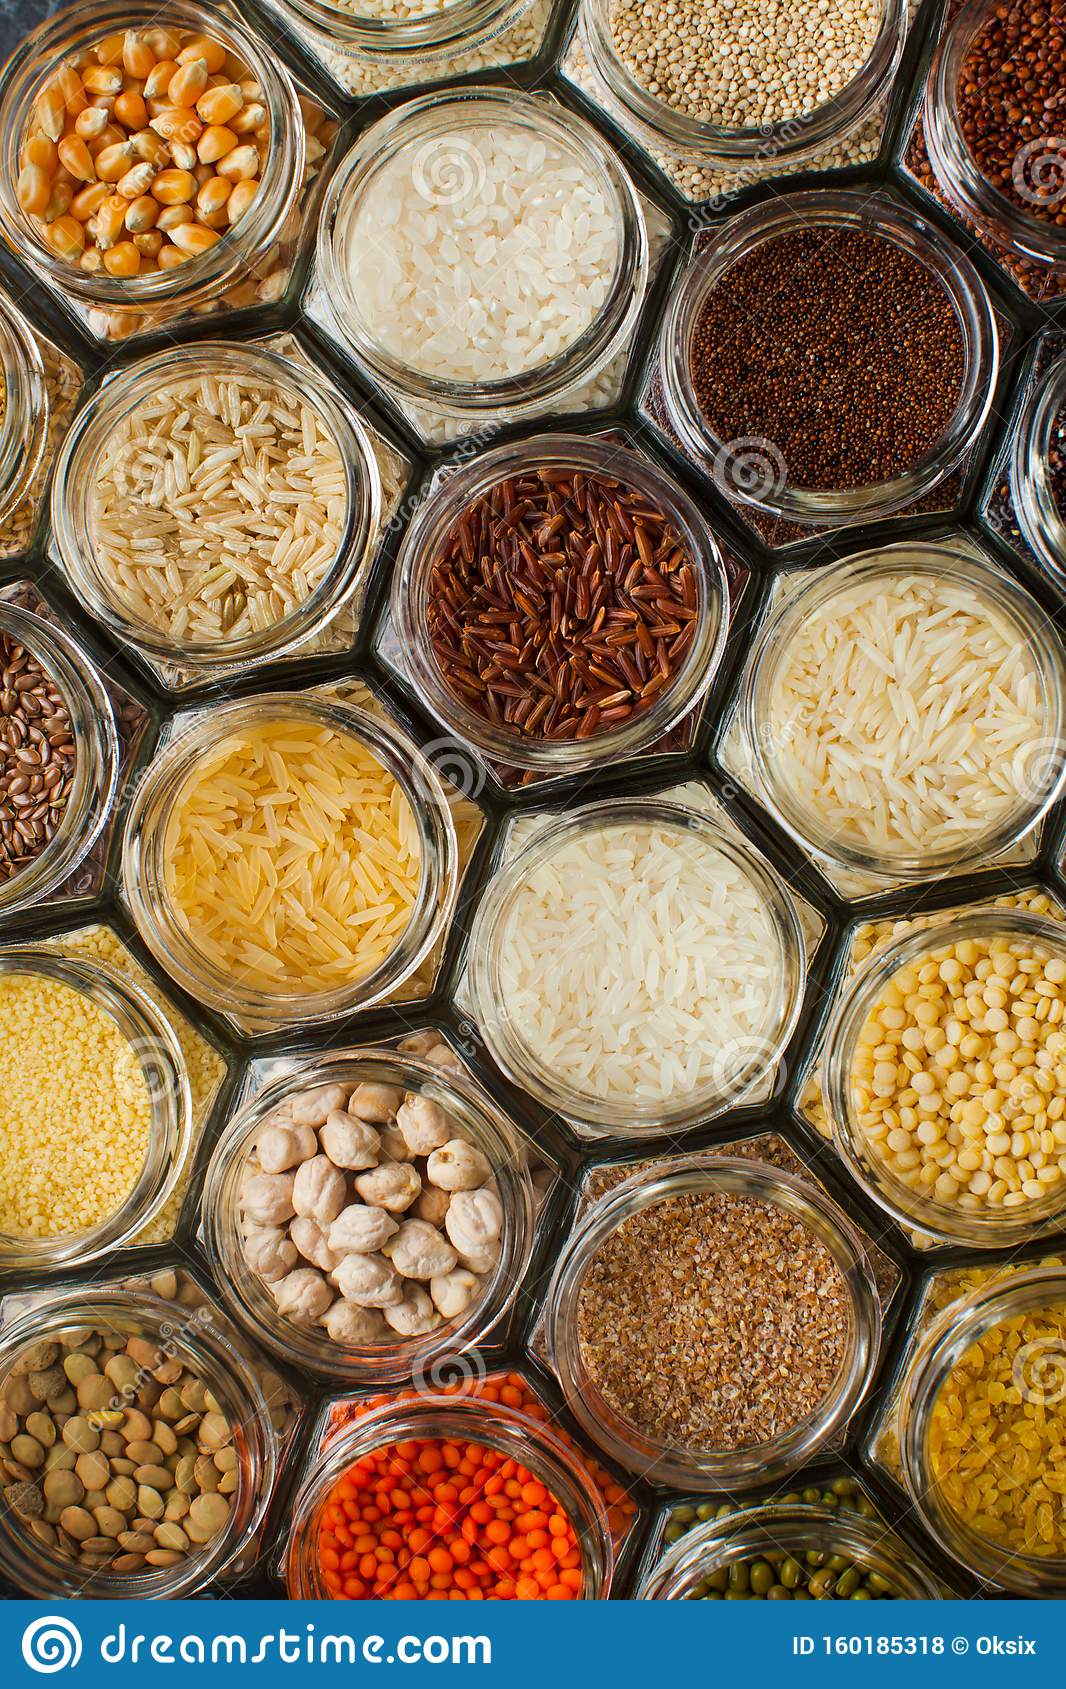 Food Pattern Background - Beans And Cereals In Jars Stock ...